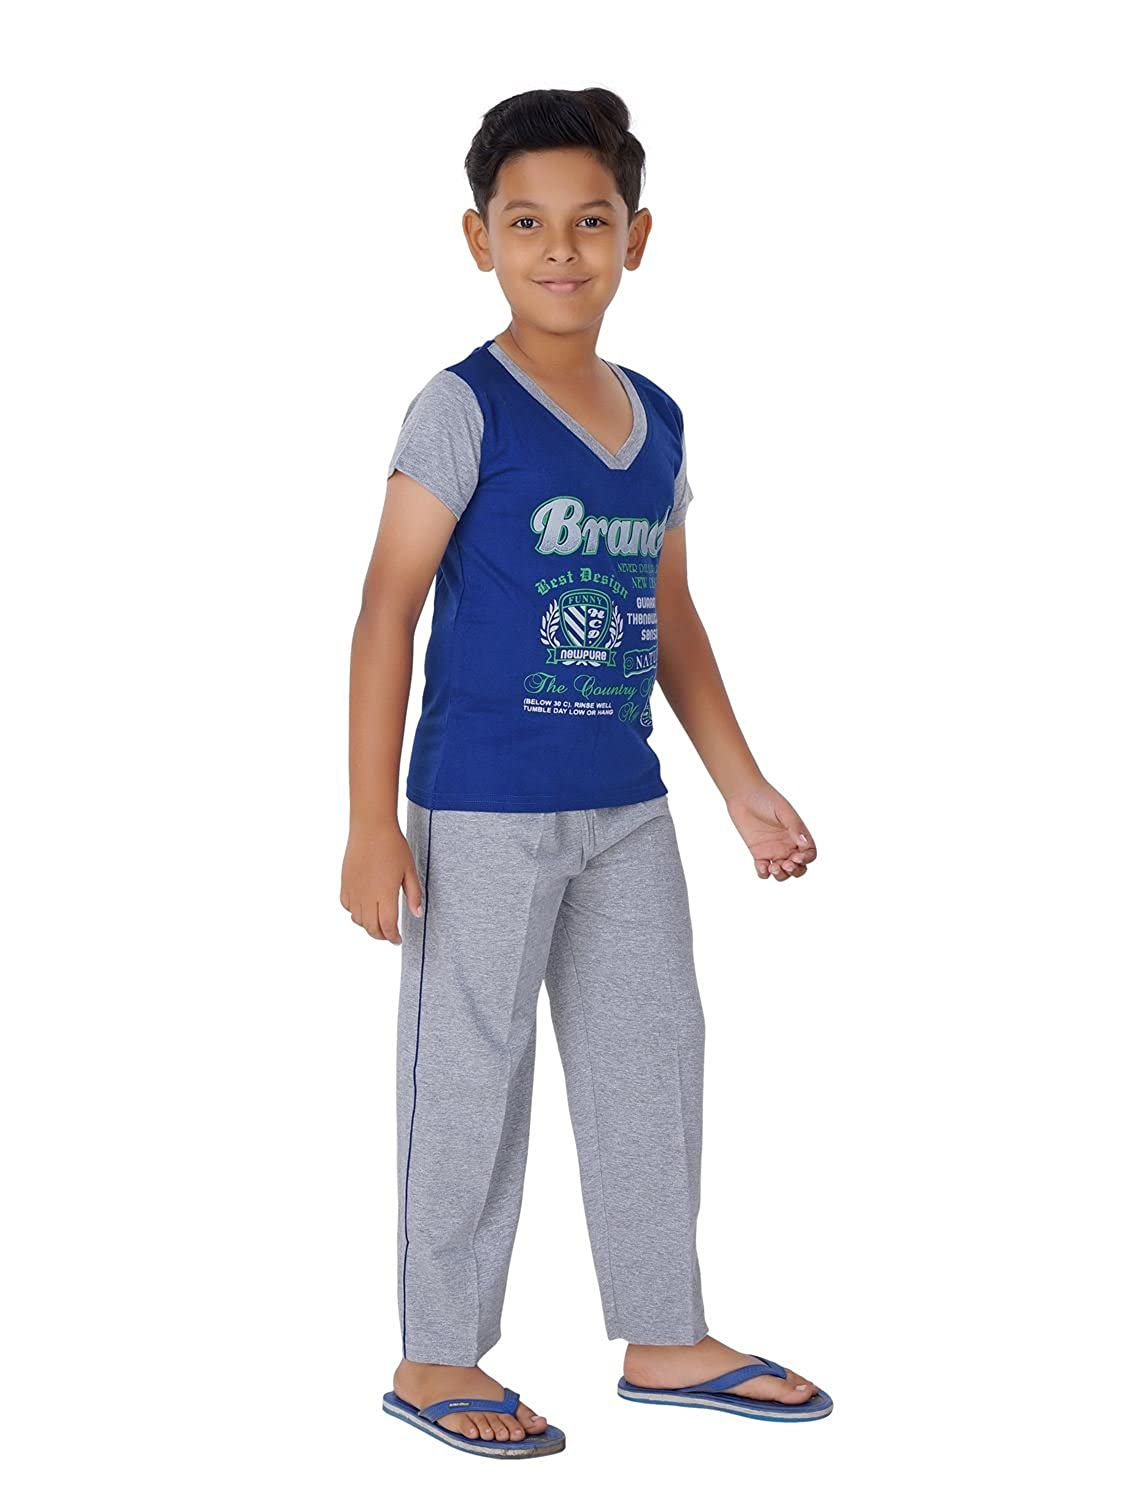 e8fe4054e25 Ginessa Summer Night Suit for Kids   Boys - Night wear - Track Suits - Pyjama  Tshirt Night Wear Combo Set -Cotton Material-Half Sleeve - Multi Color ...